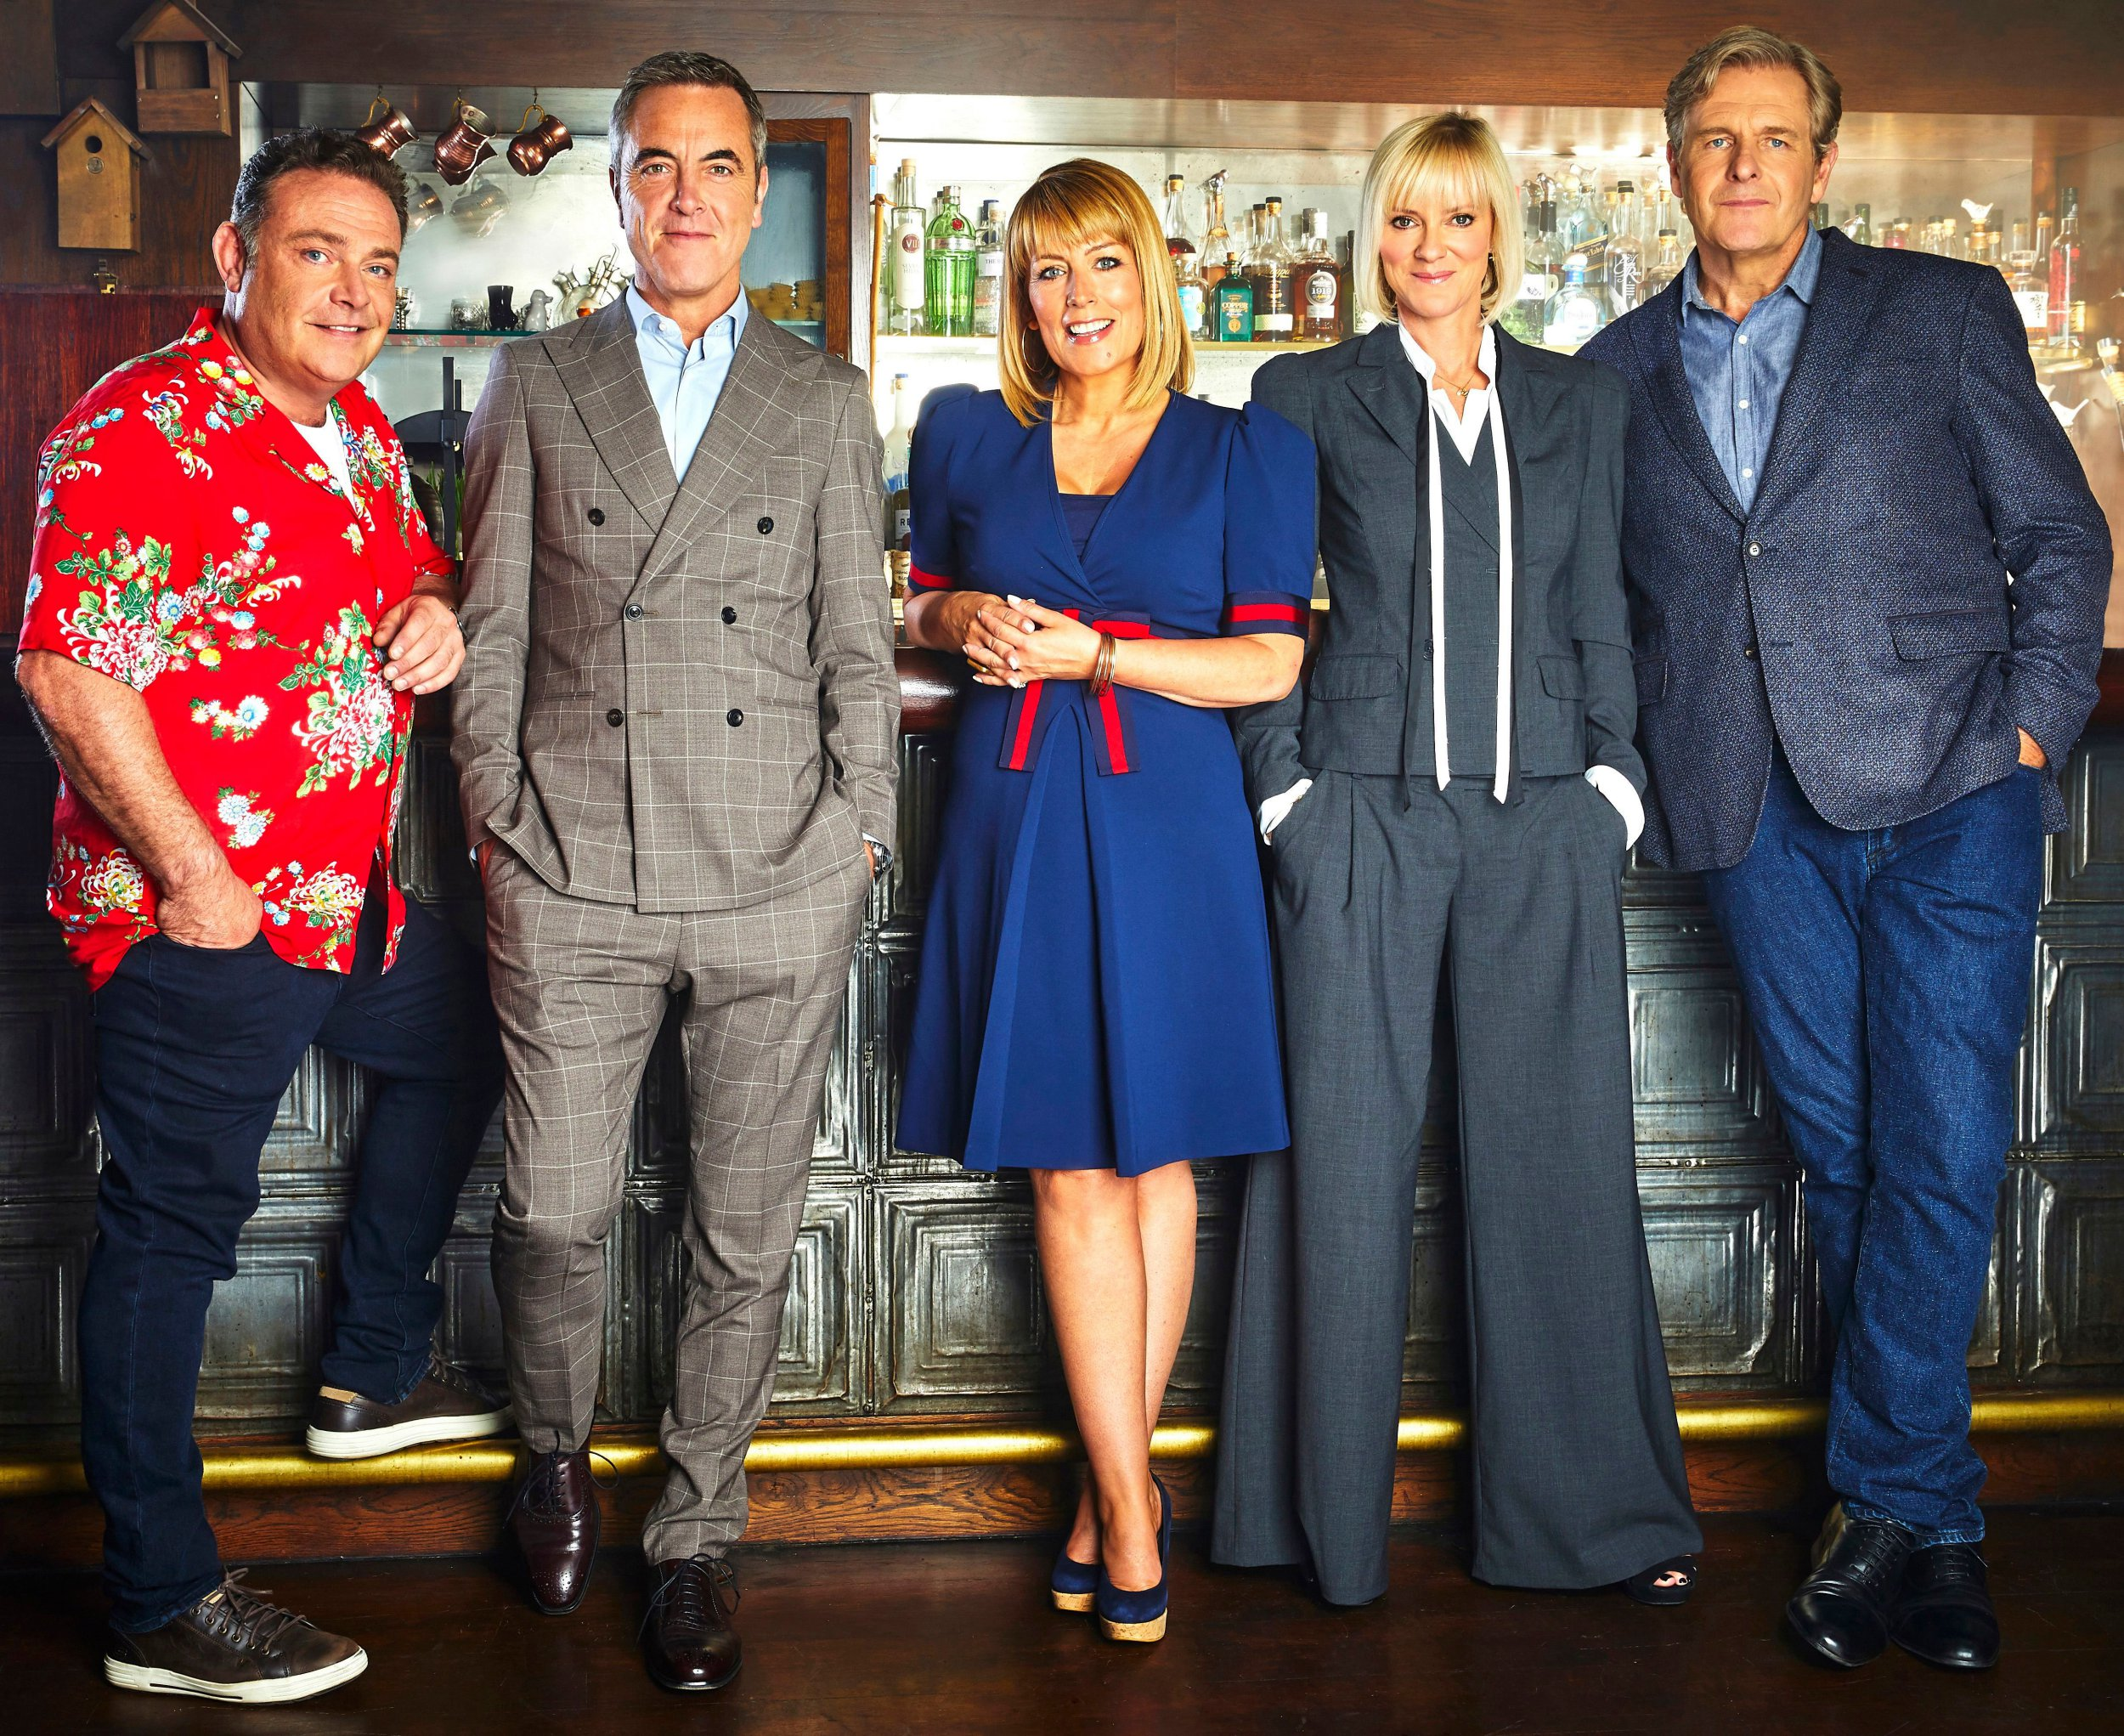 Editorial use only Mandatory Credit: Photo by ITV/REX/Shutterstock (10037955a) Pete, as played by John Thomson, Adam, as played by James Nesbitt, Jenny, as played by Fay Ripley, Karen, as played by Hermione Norris and David Marsden, as played by Robert Bathurst. 'Cold Feet' TV Show, Series 8 UK - Jan 2019